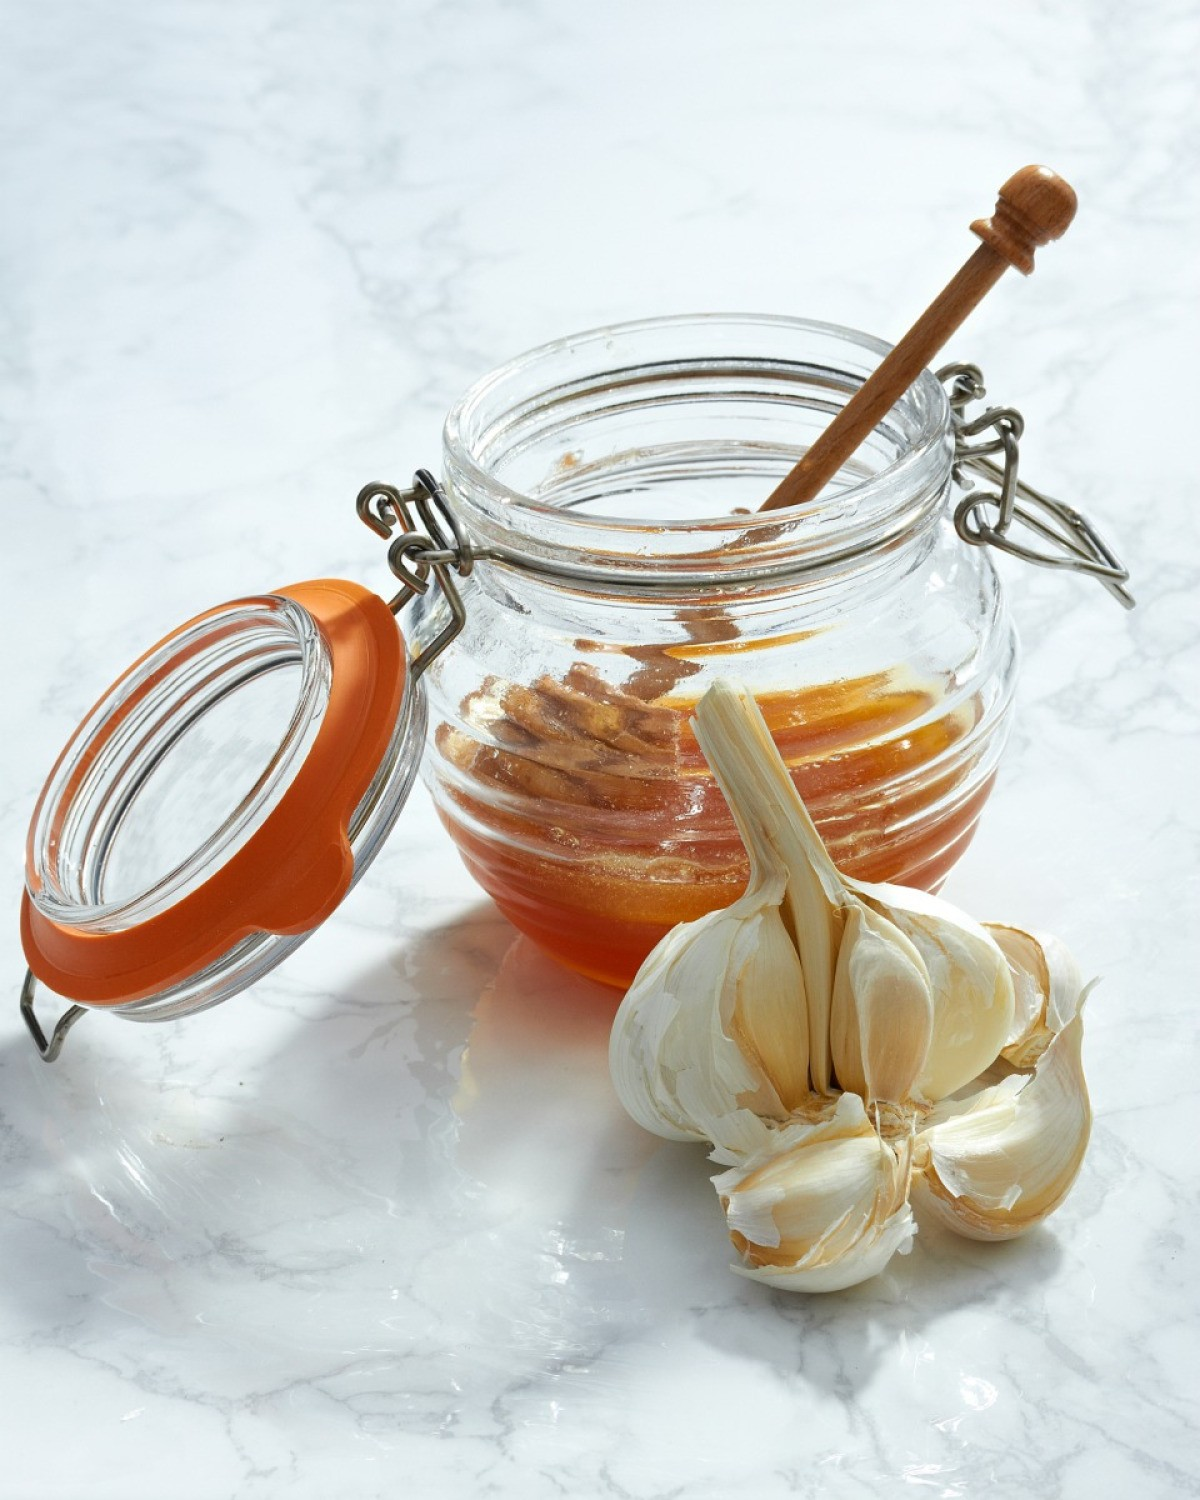 Honey and garlic, ingredients in some natural cough medicines.